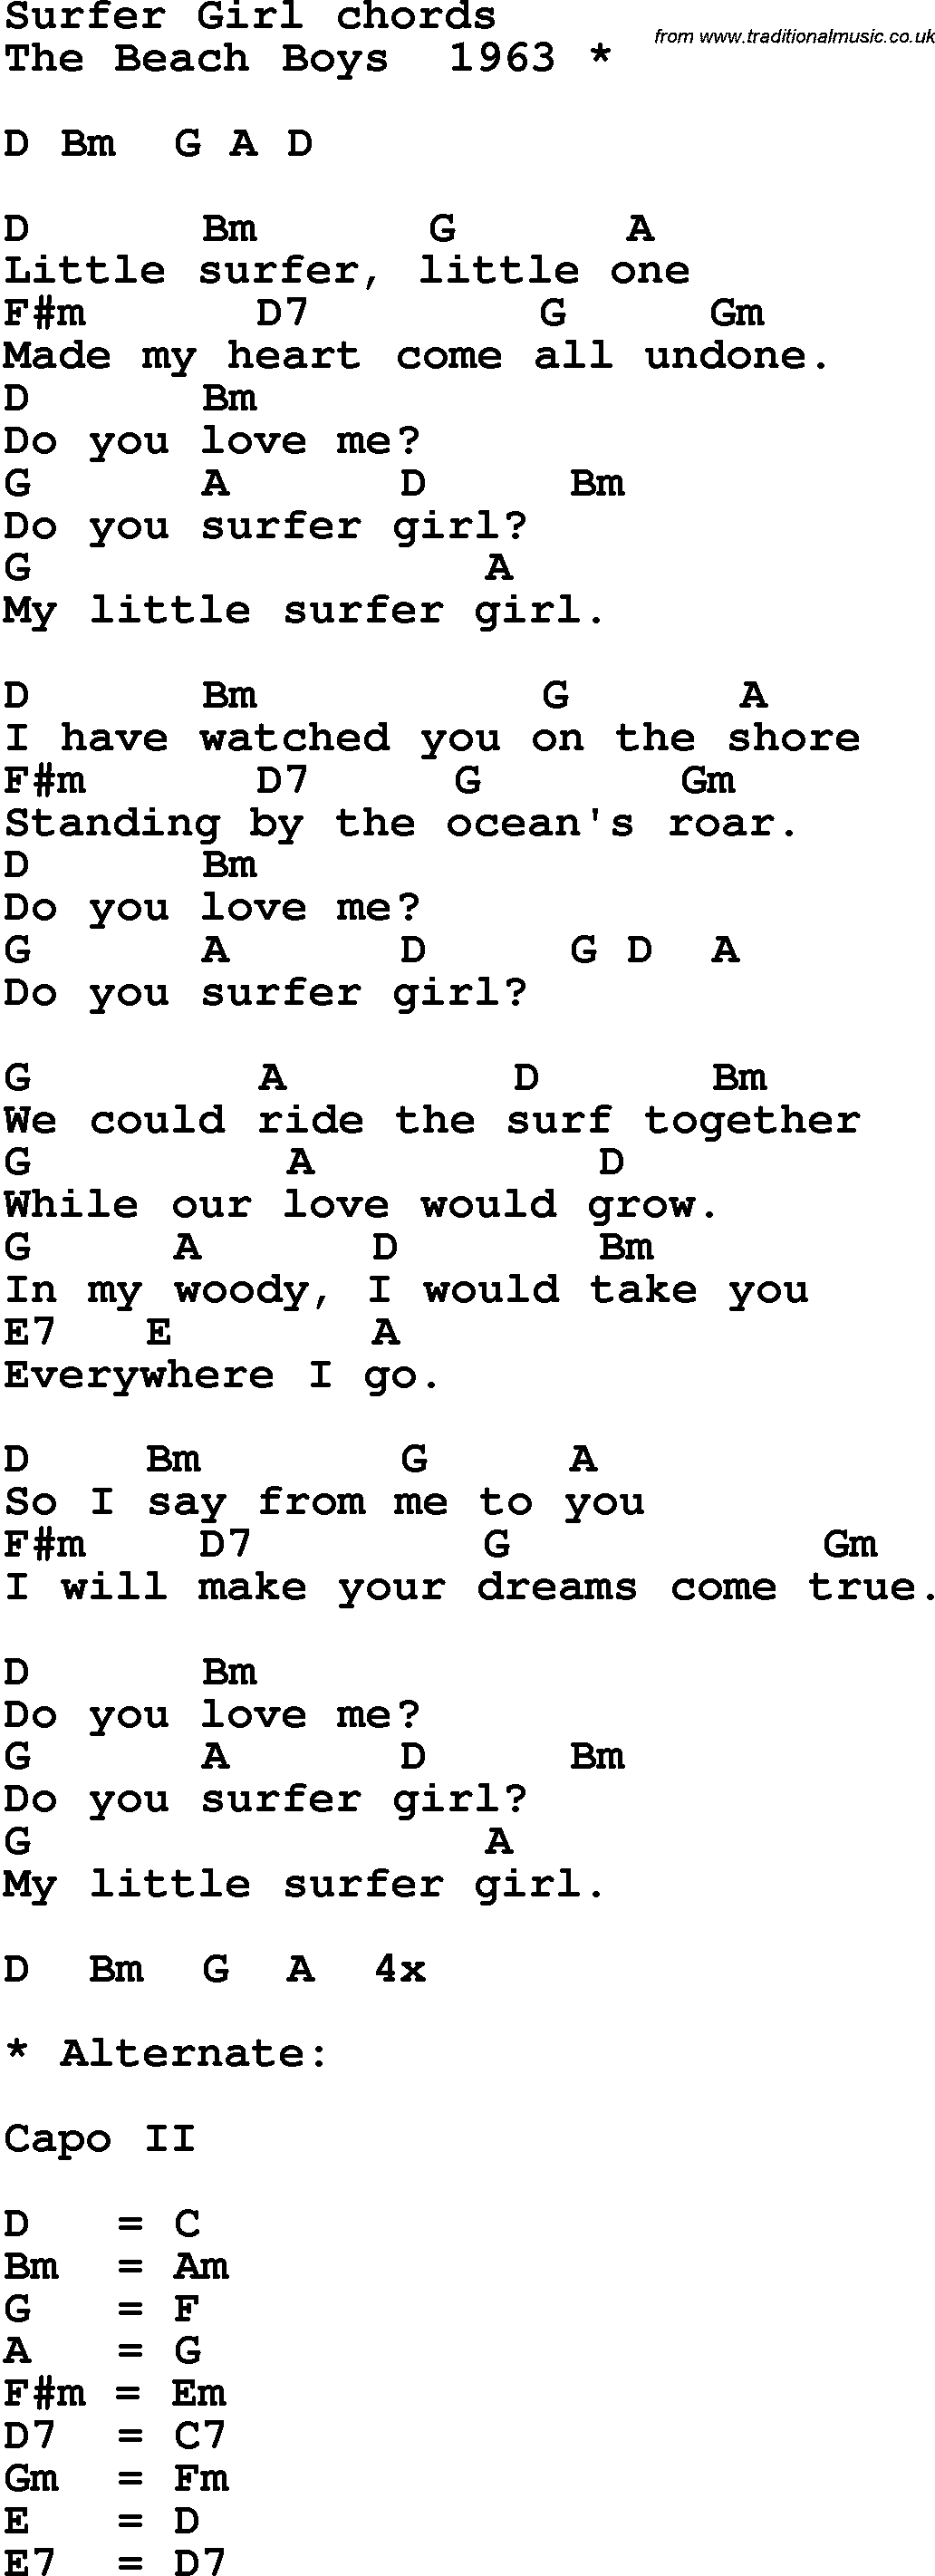 Surfer girl chords